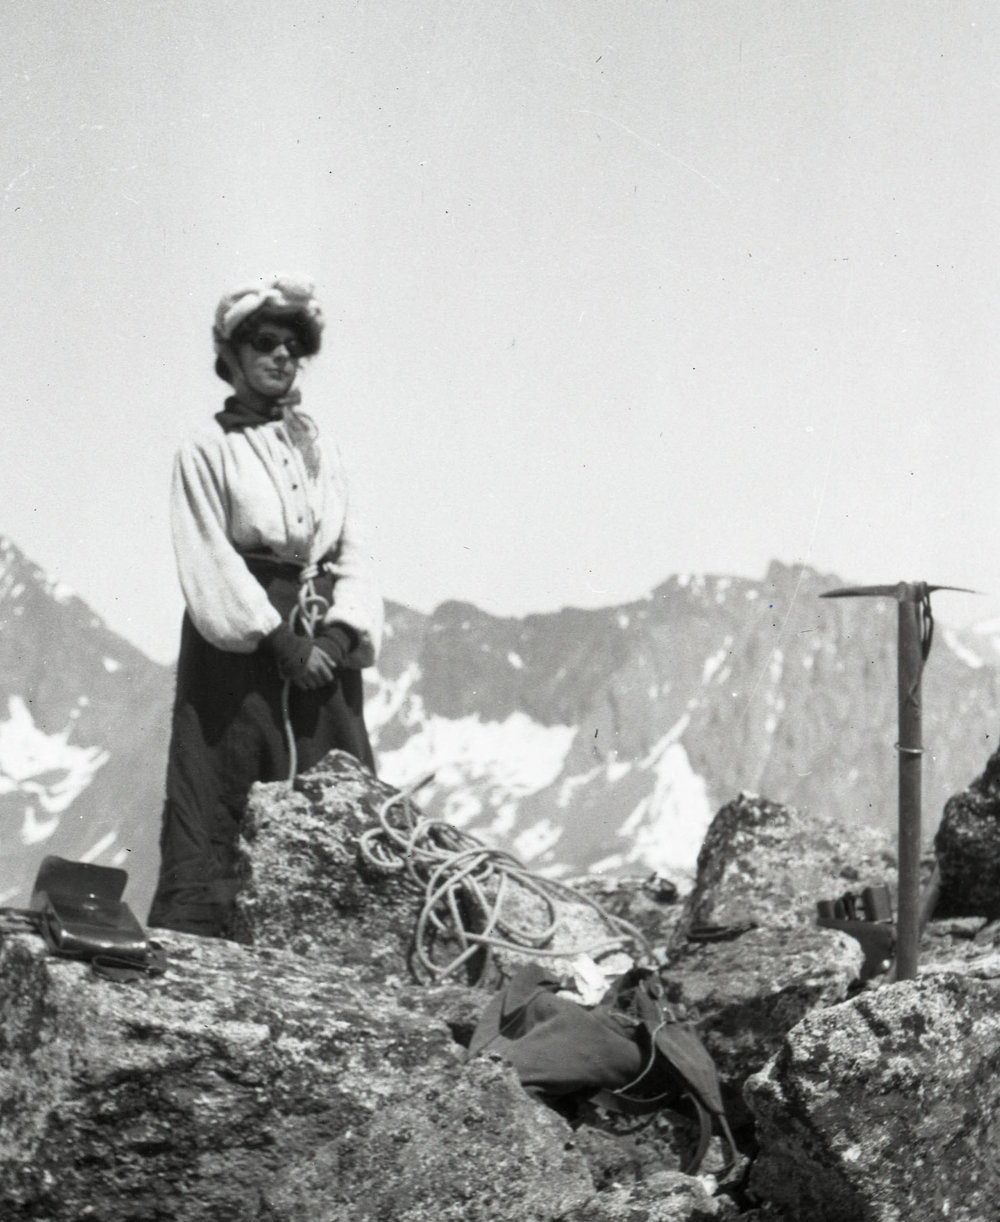 Another summit in the Alps climbed in a dress circa 1911